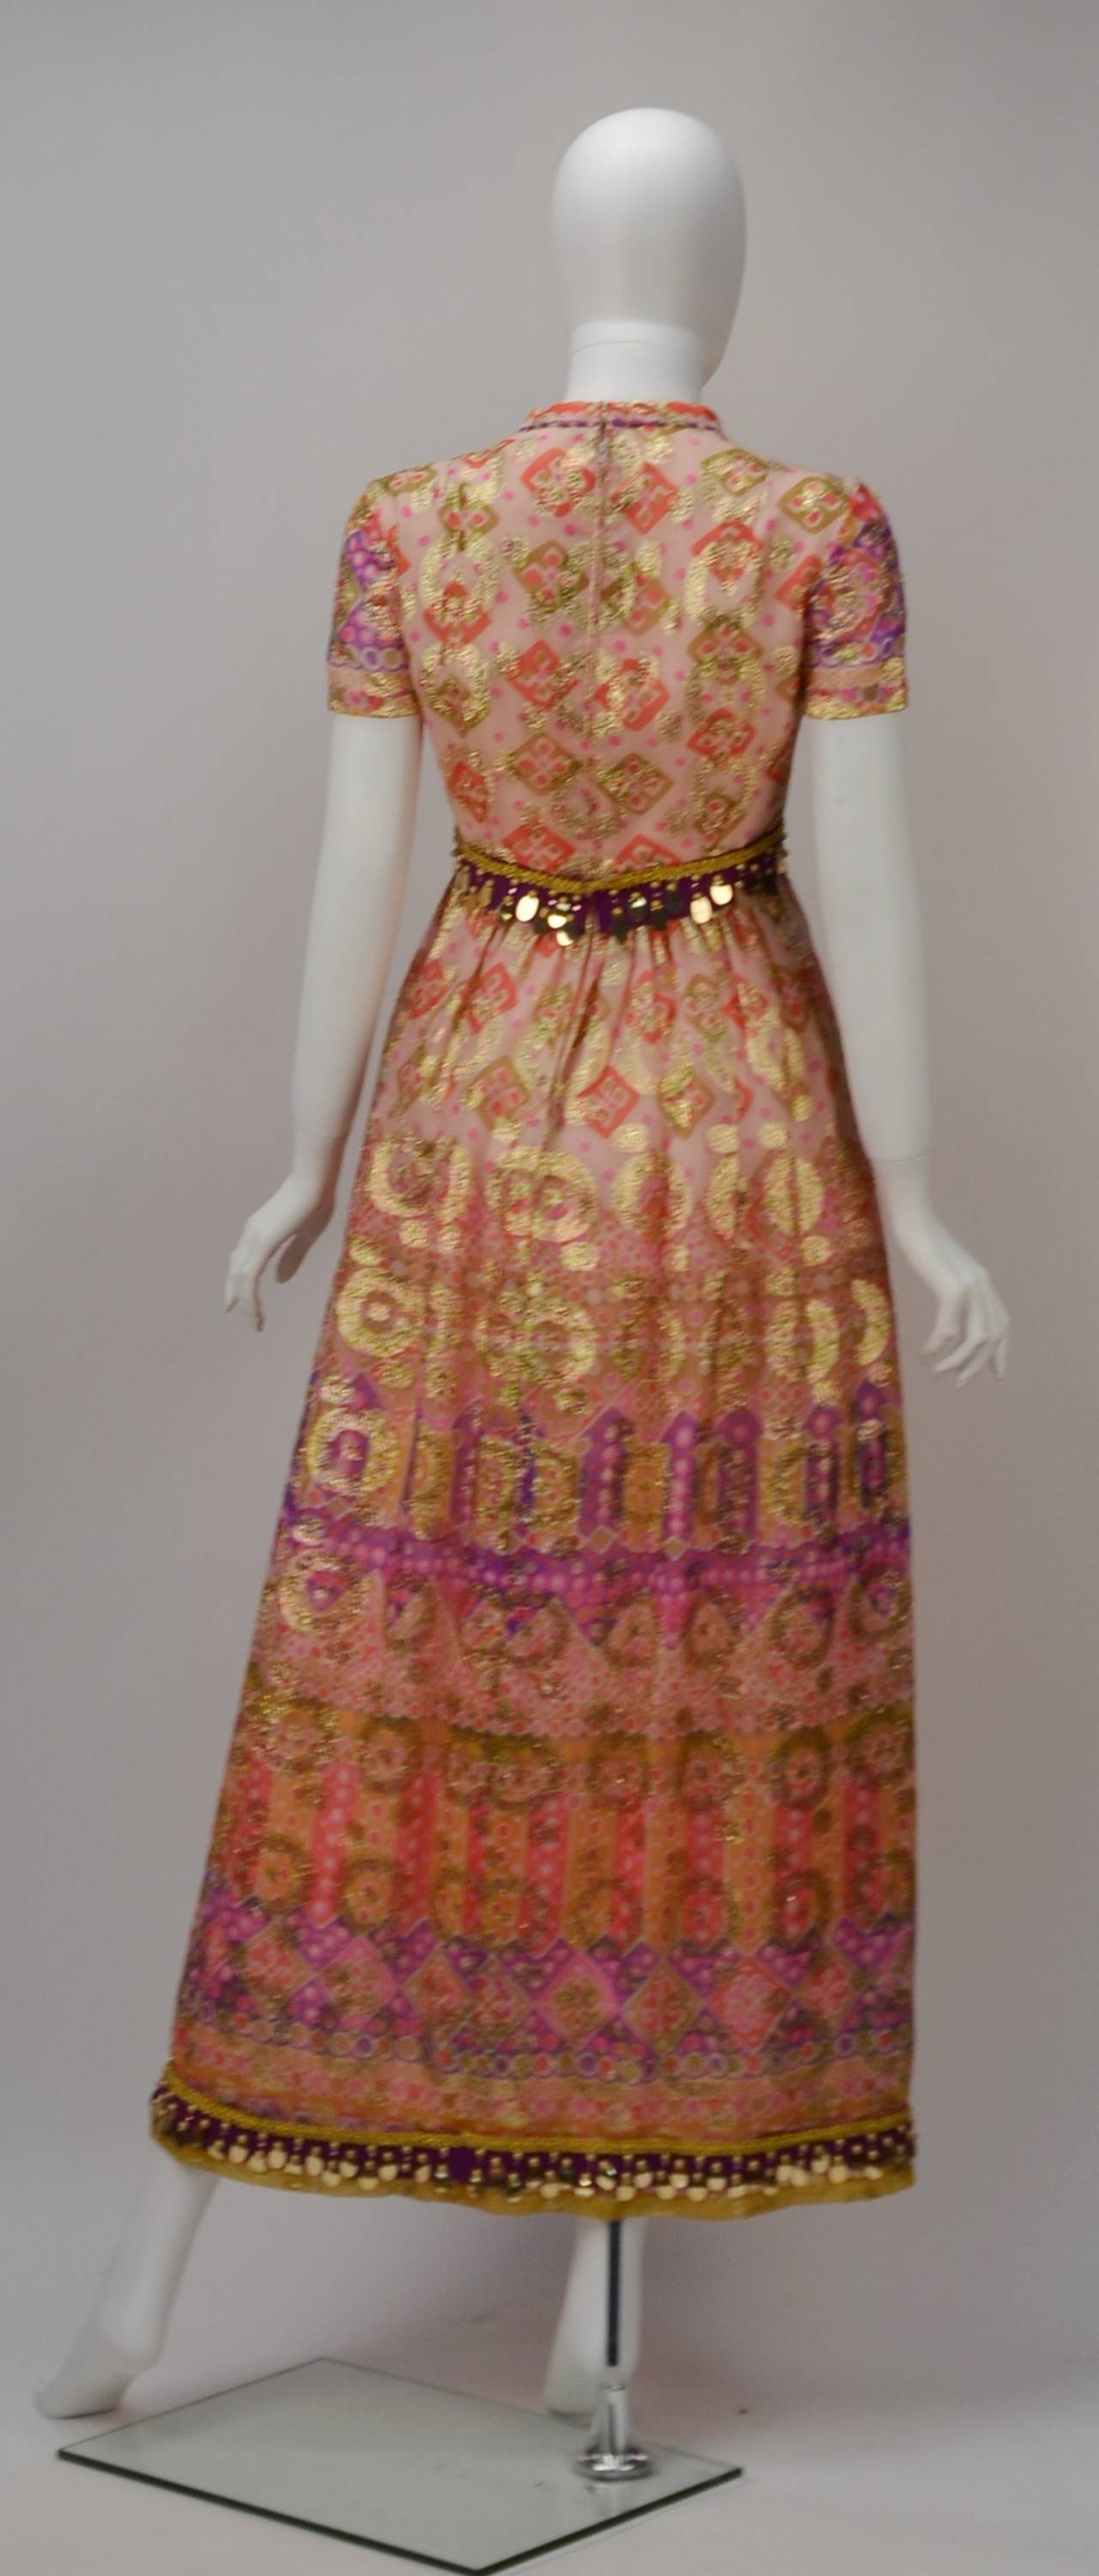 Teal Gino Traina and Malcolm Charles Starr loved exquisite fabrics. Evidence can be found in this pink, purple and gold print dress. Empire waist and a mandarin collar that opens in a deep V. Gold dot sequins dangle at the waist and hem. Fitted